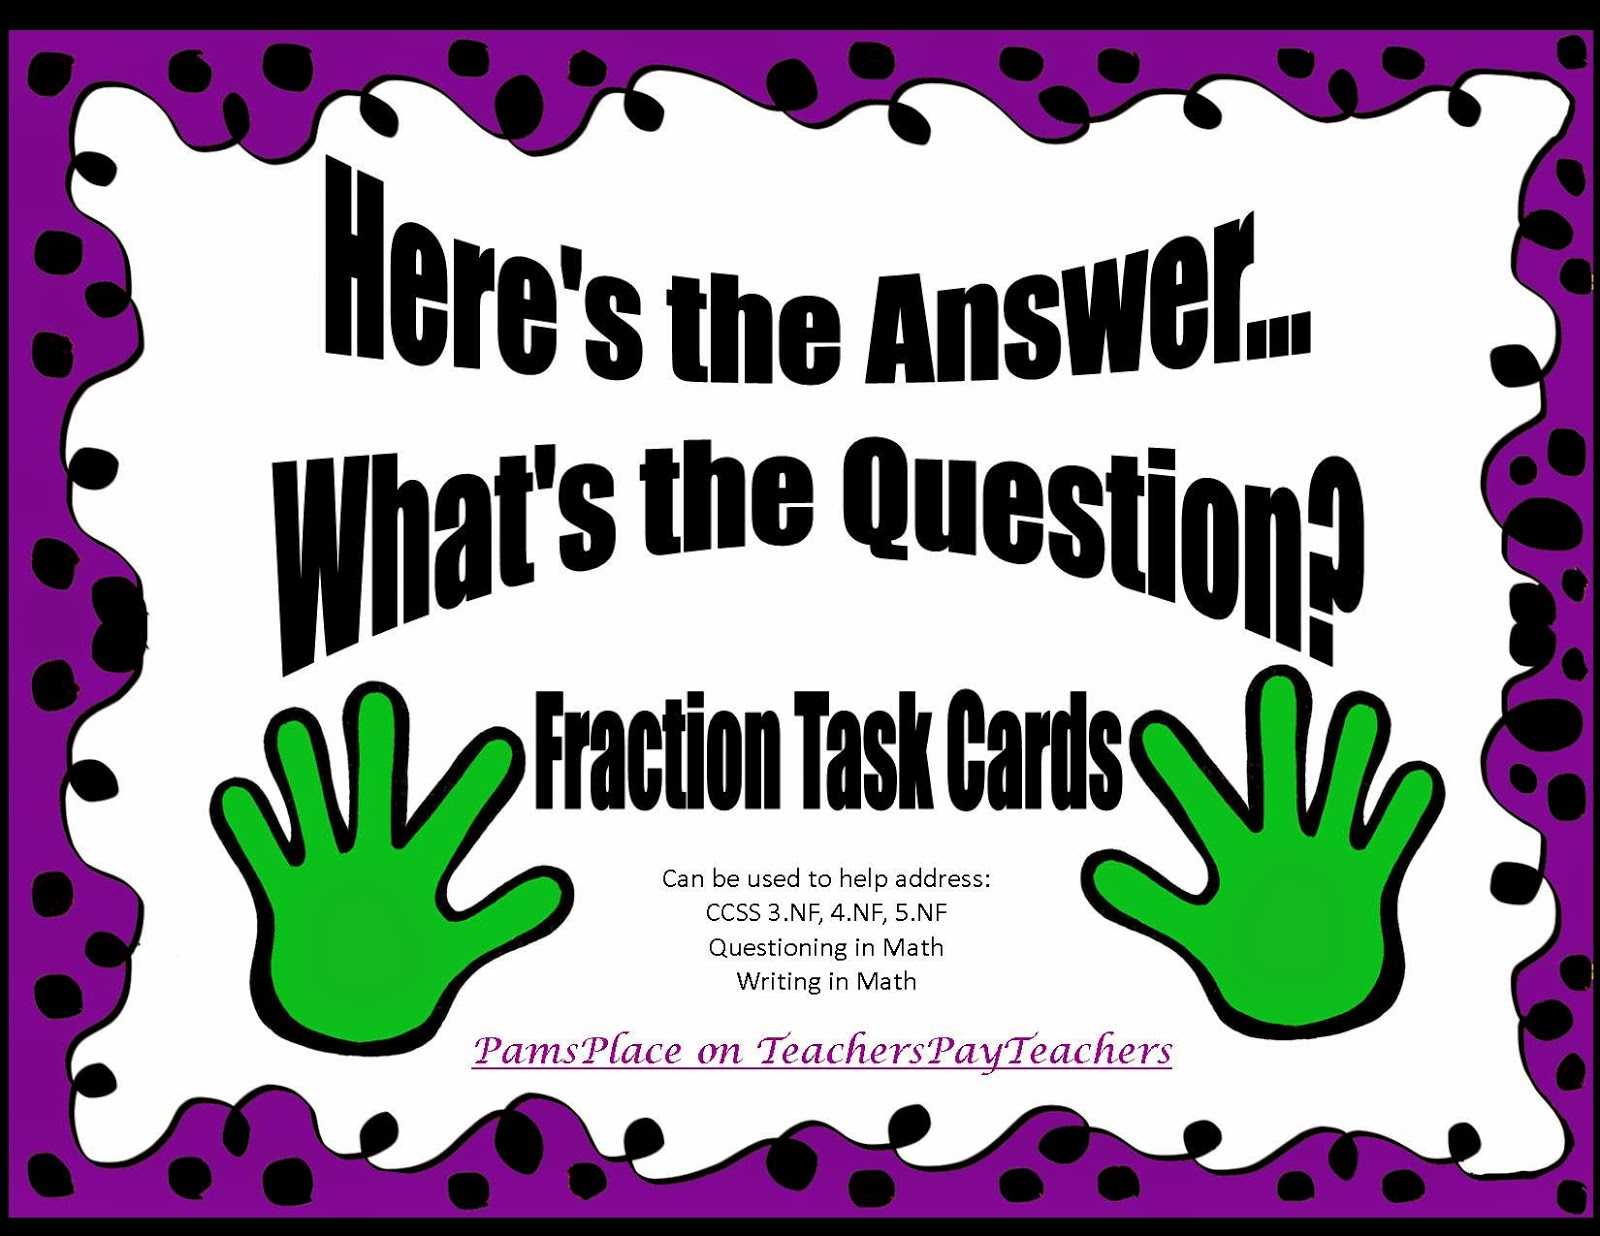 http://www.teacherspayteachers.com/Product/Fraction-Task-Cards-Heres-the-AnswerWhats-the-Question-636947